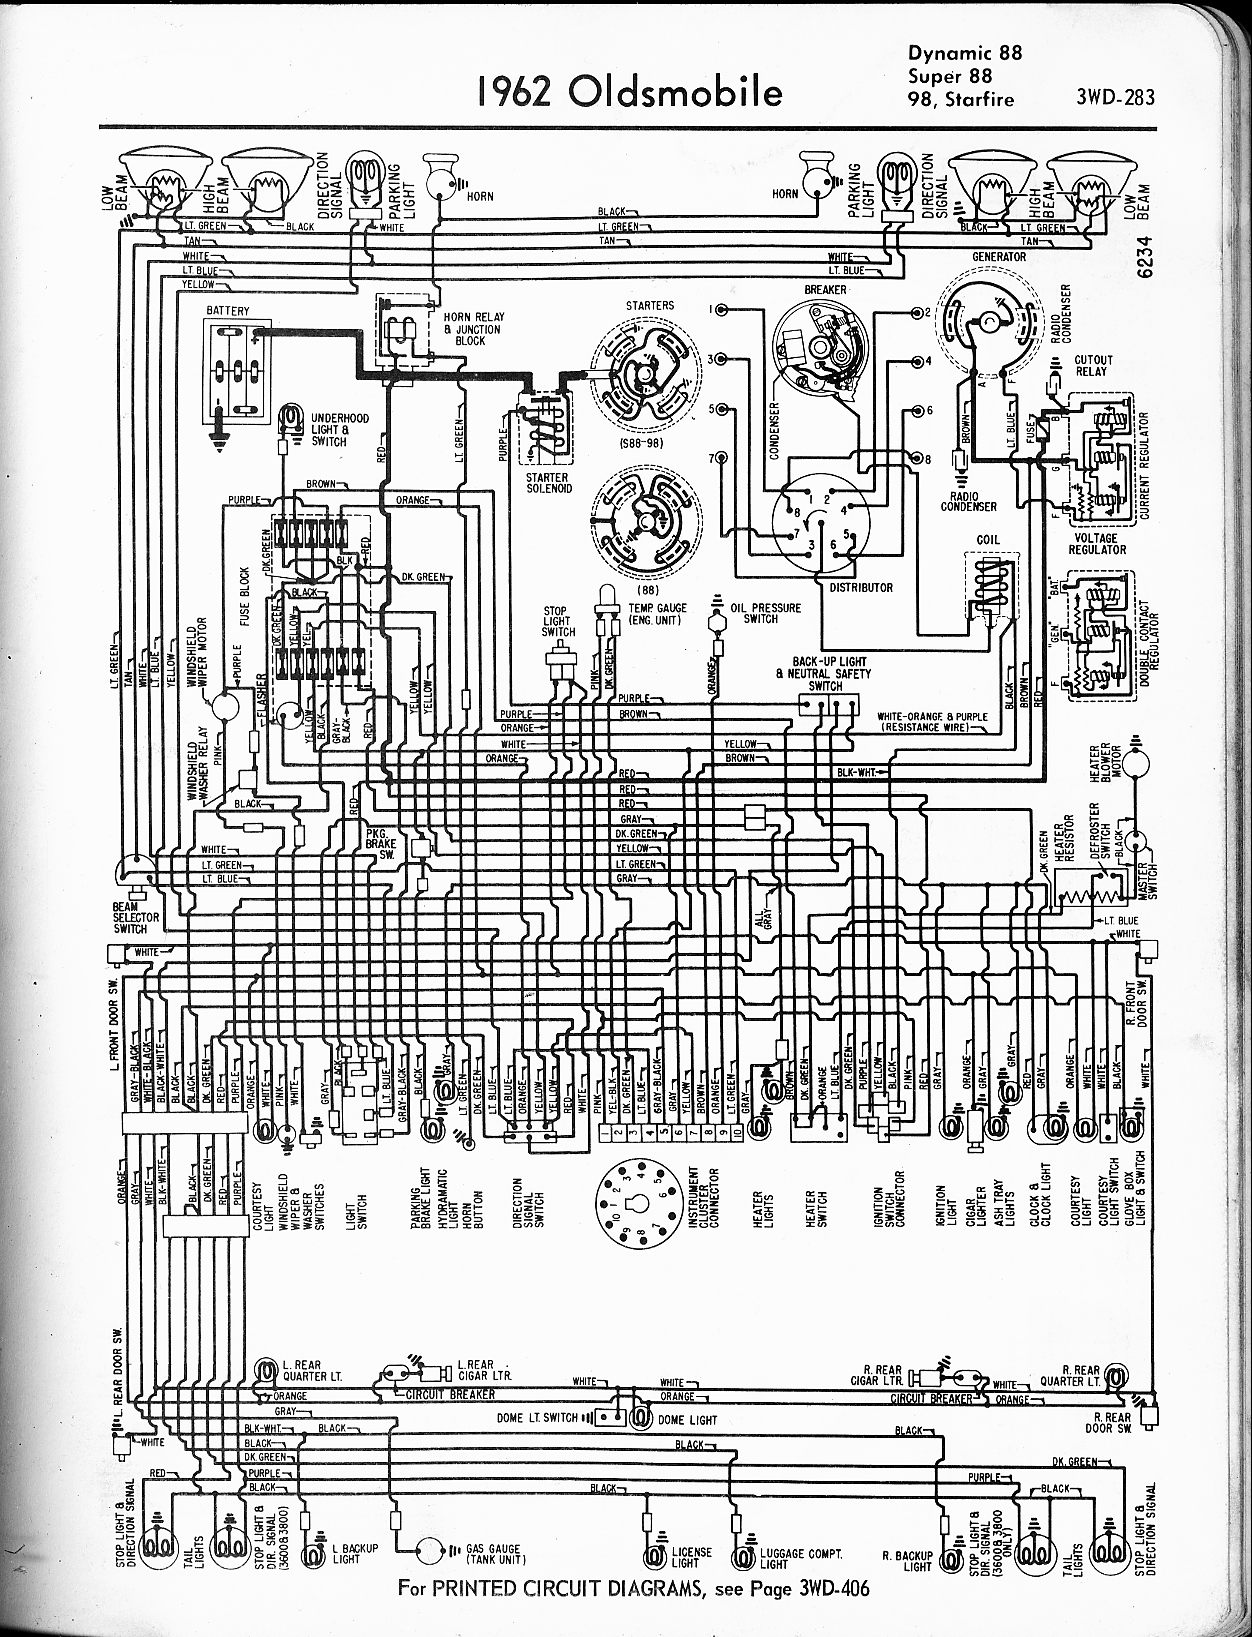 1954 Oldsmobile Wiring Diagram Start Building A Alero Radio Diagrams The Old Car Manual Project Rh Oldcarmanualproject Com Stereo